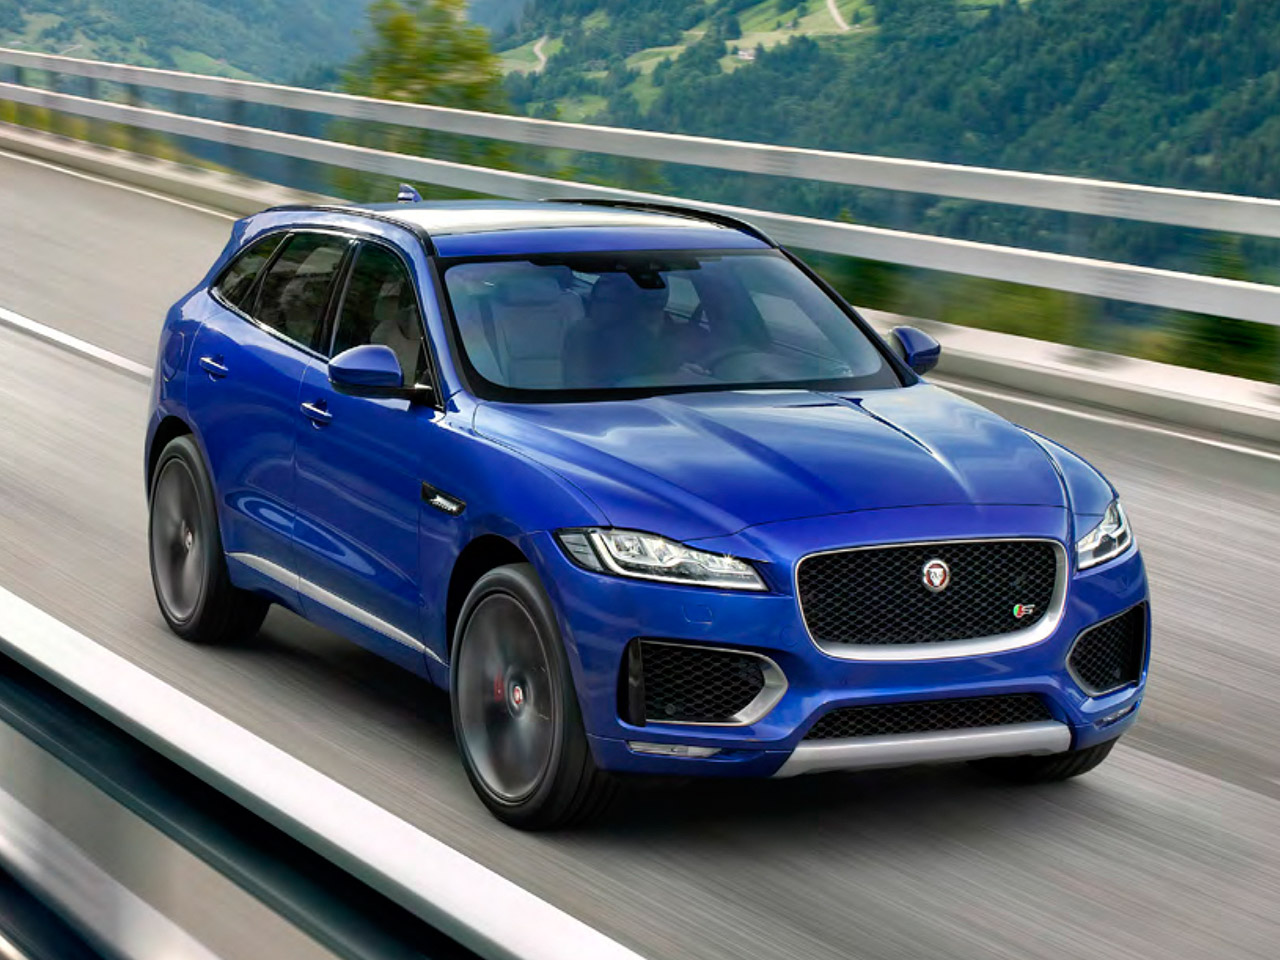 jaguar f pace 2016 preis update. Black Bedroom Furniture Sets. Home Design Ideas